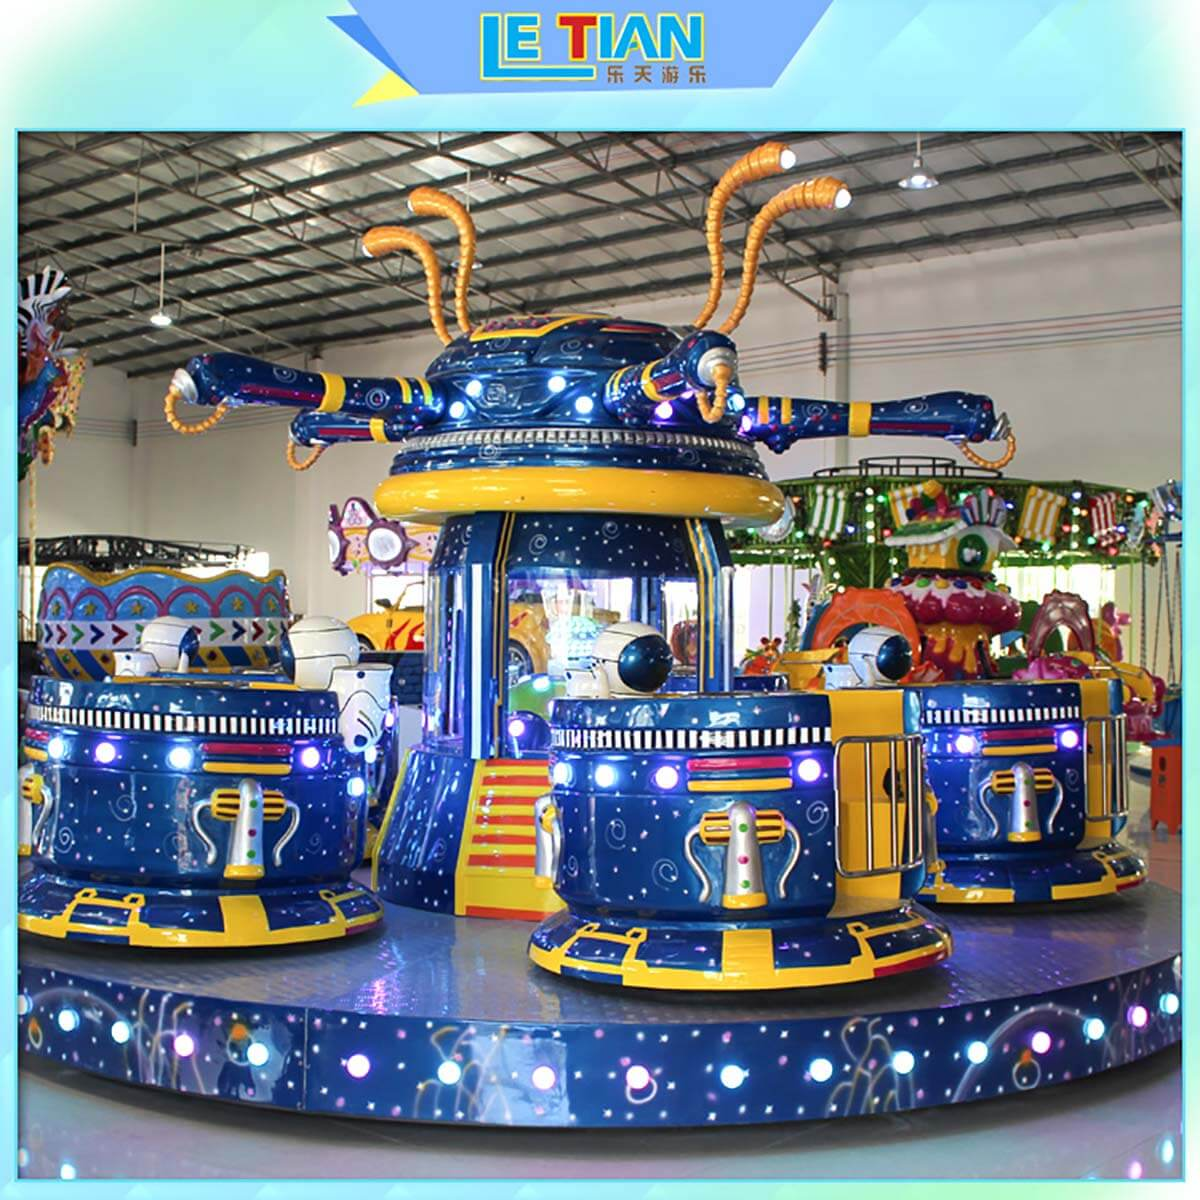 LETIAN rotating cup ride facility amusement park-2